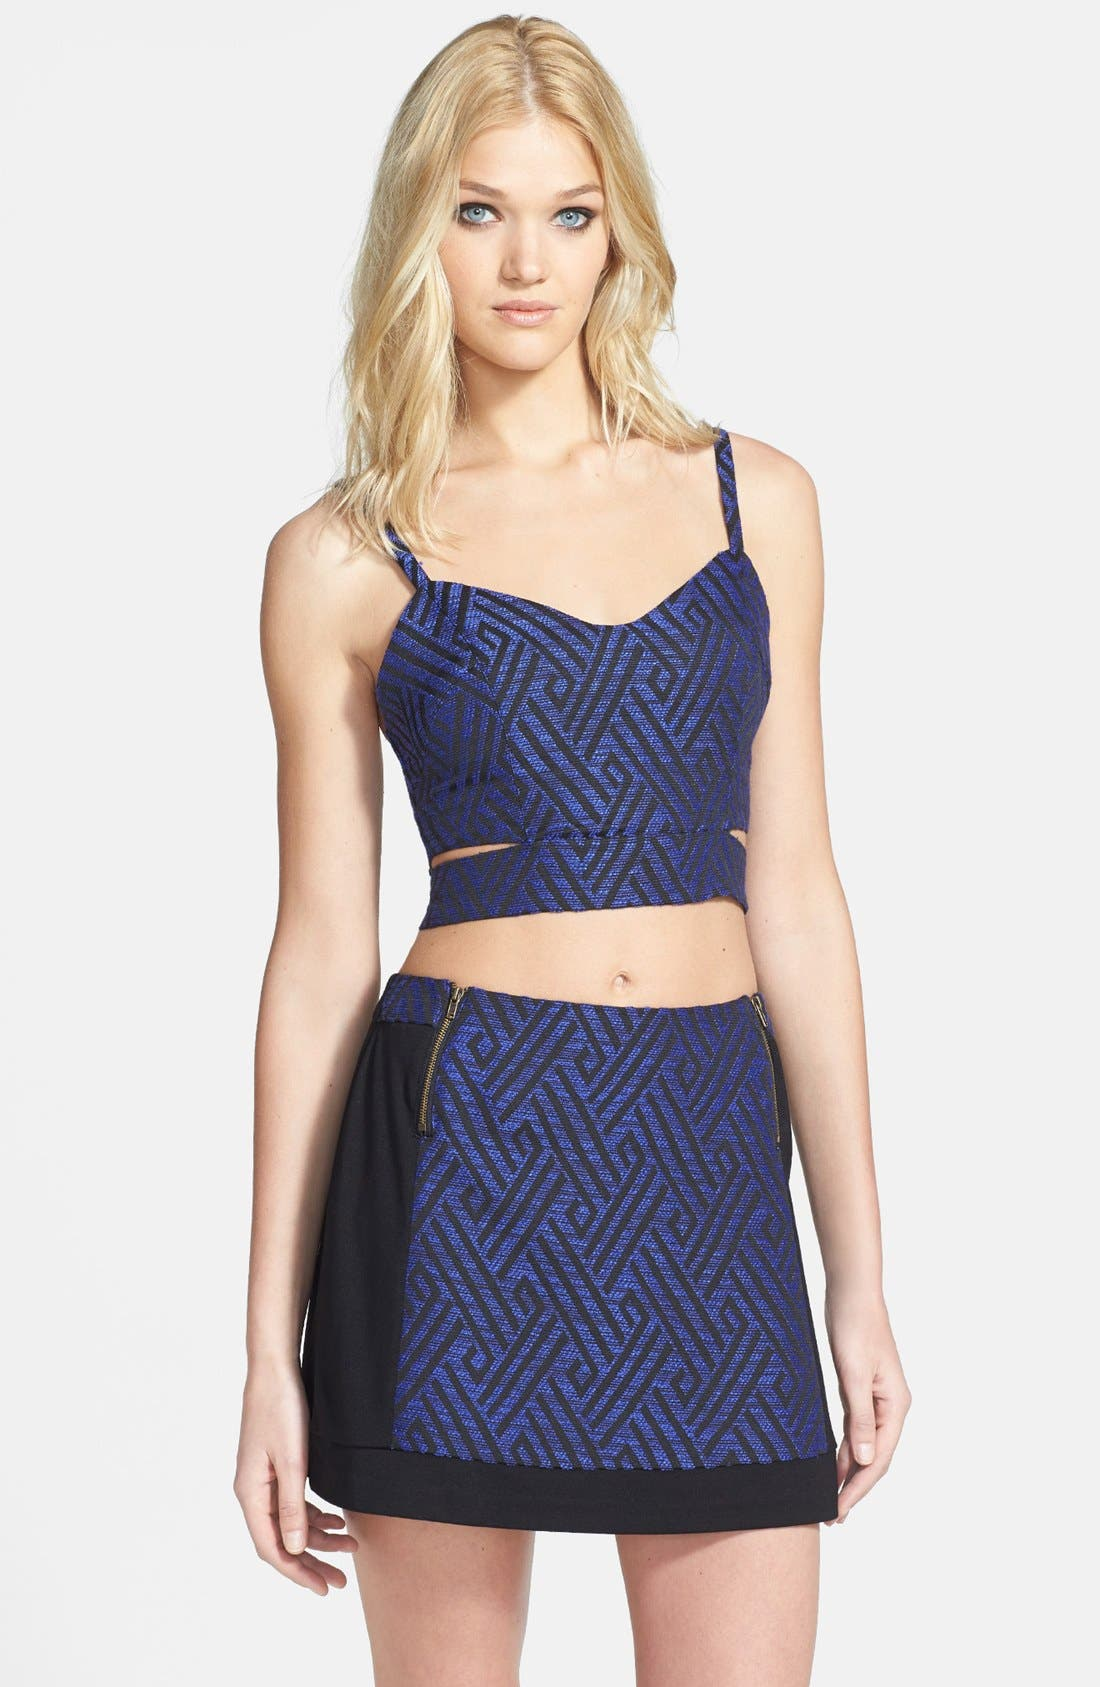 Main Image - ASTR Diamond Jacquard Cutout Crop Tank